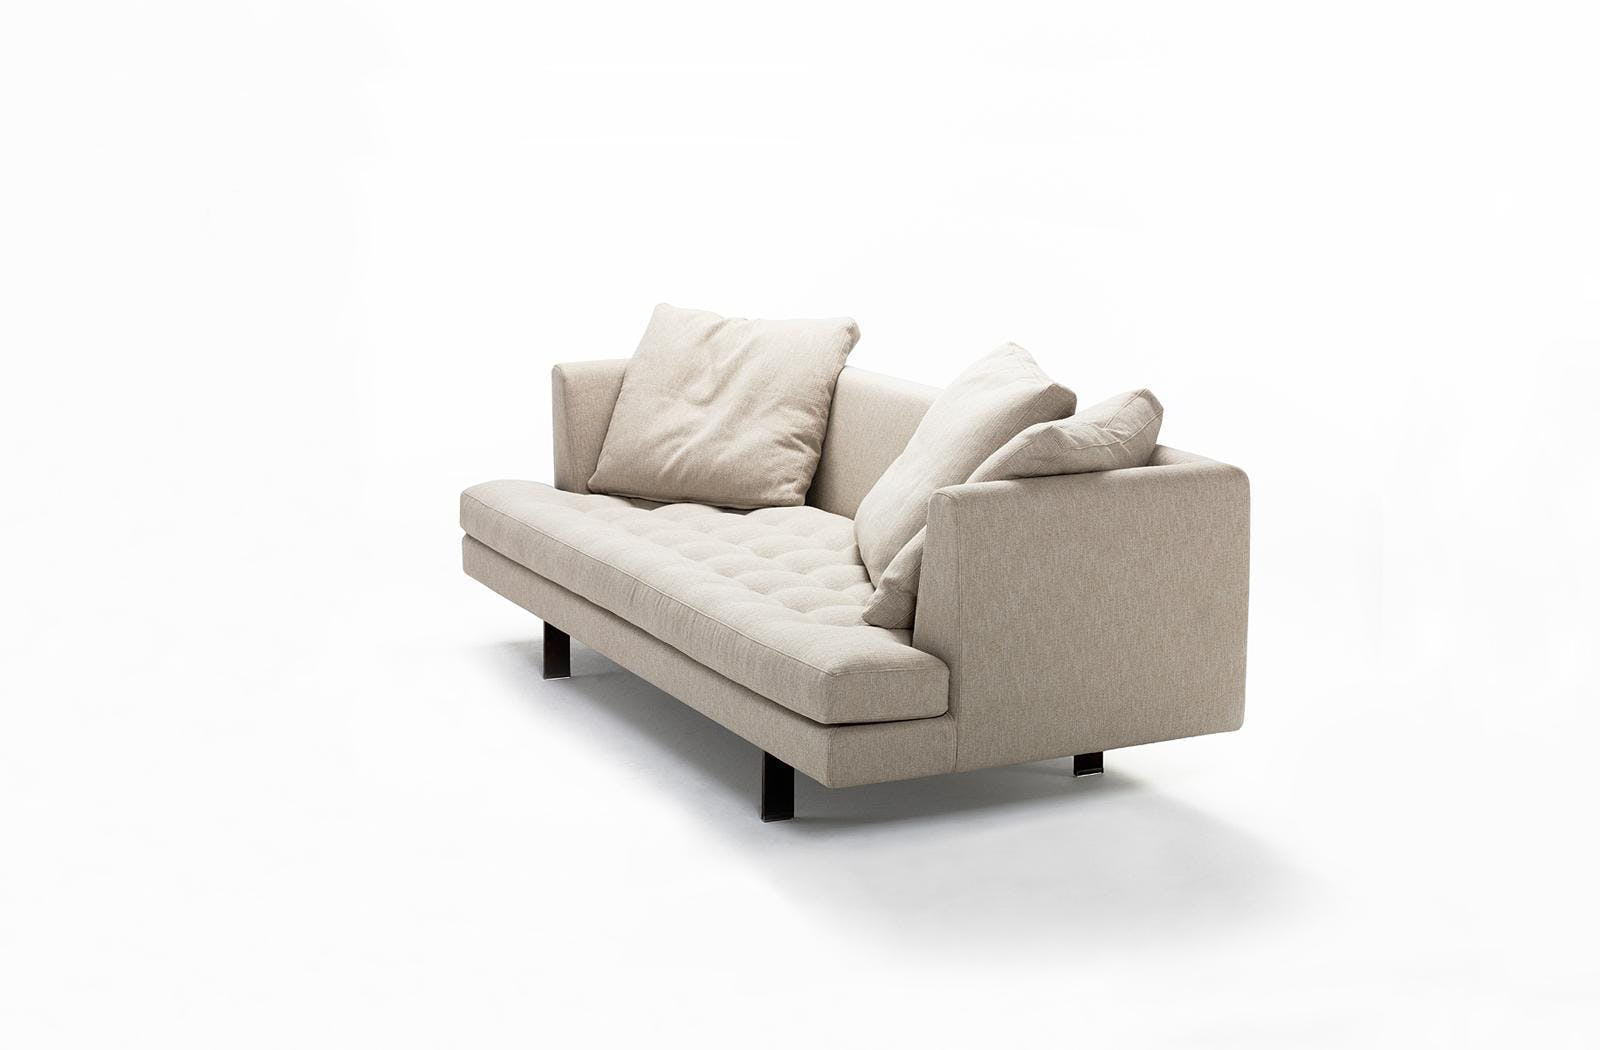 Bensen Edward Cream Sofa Angle